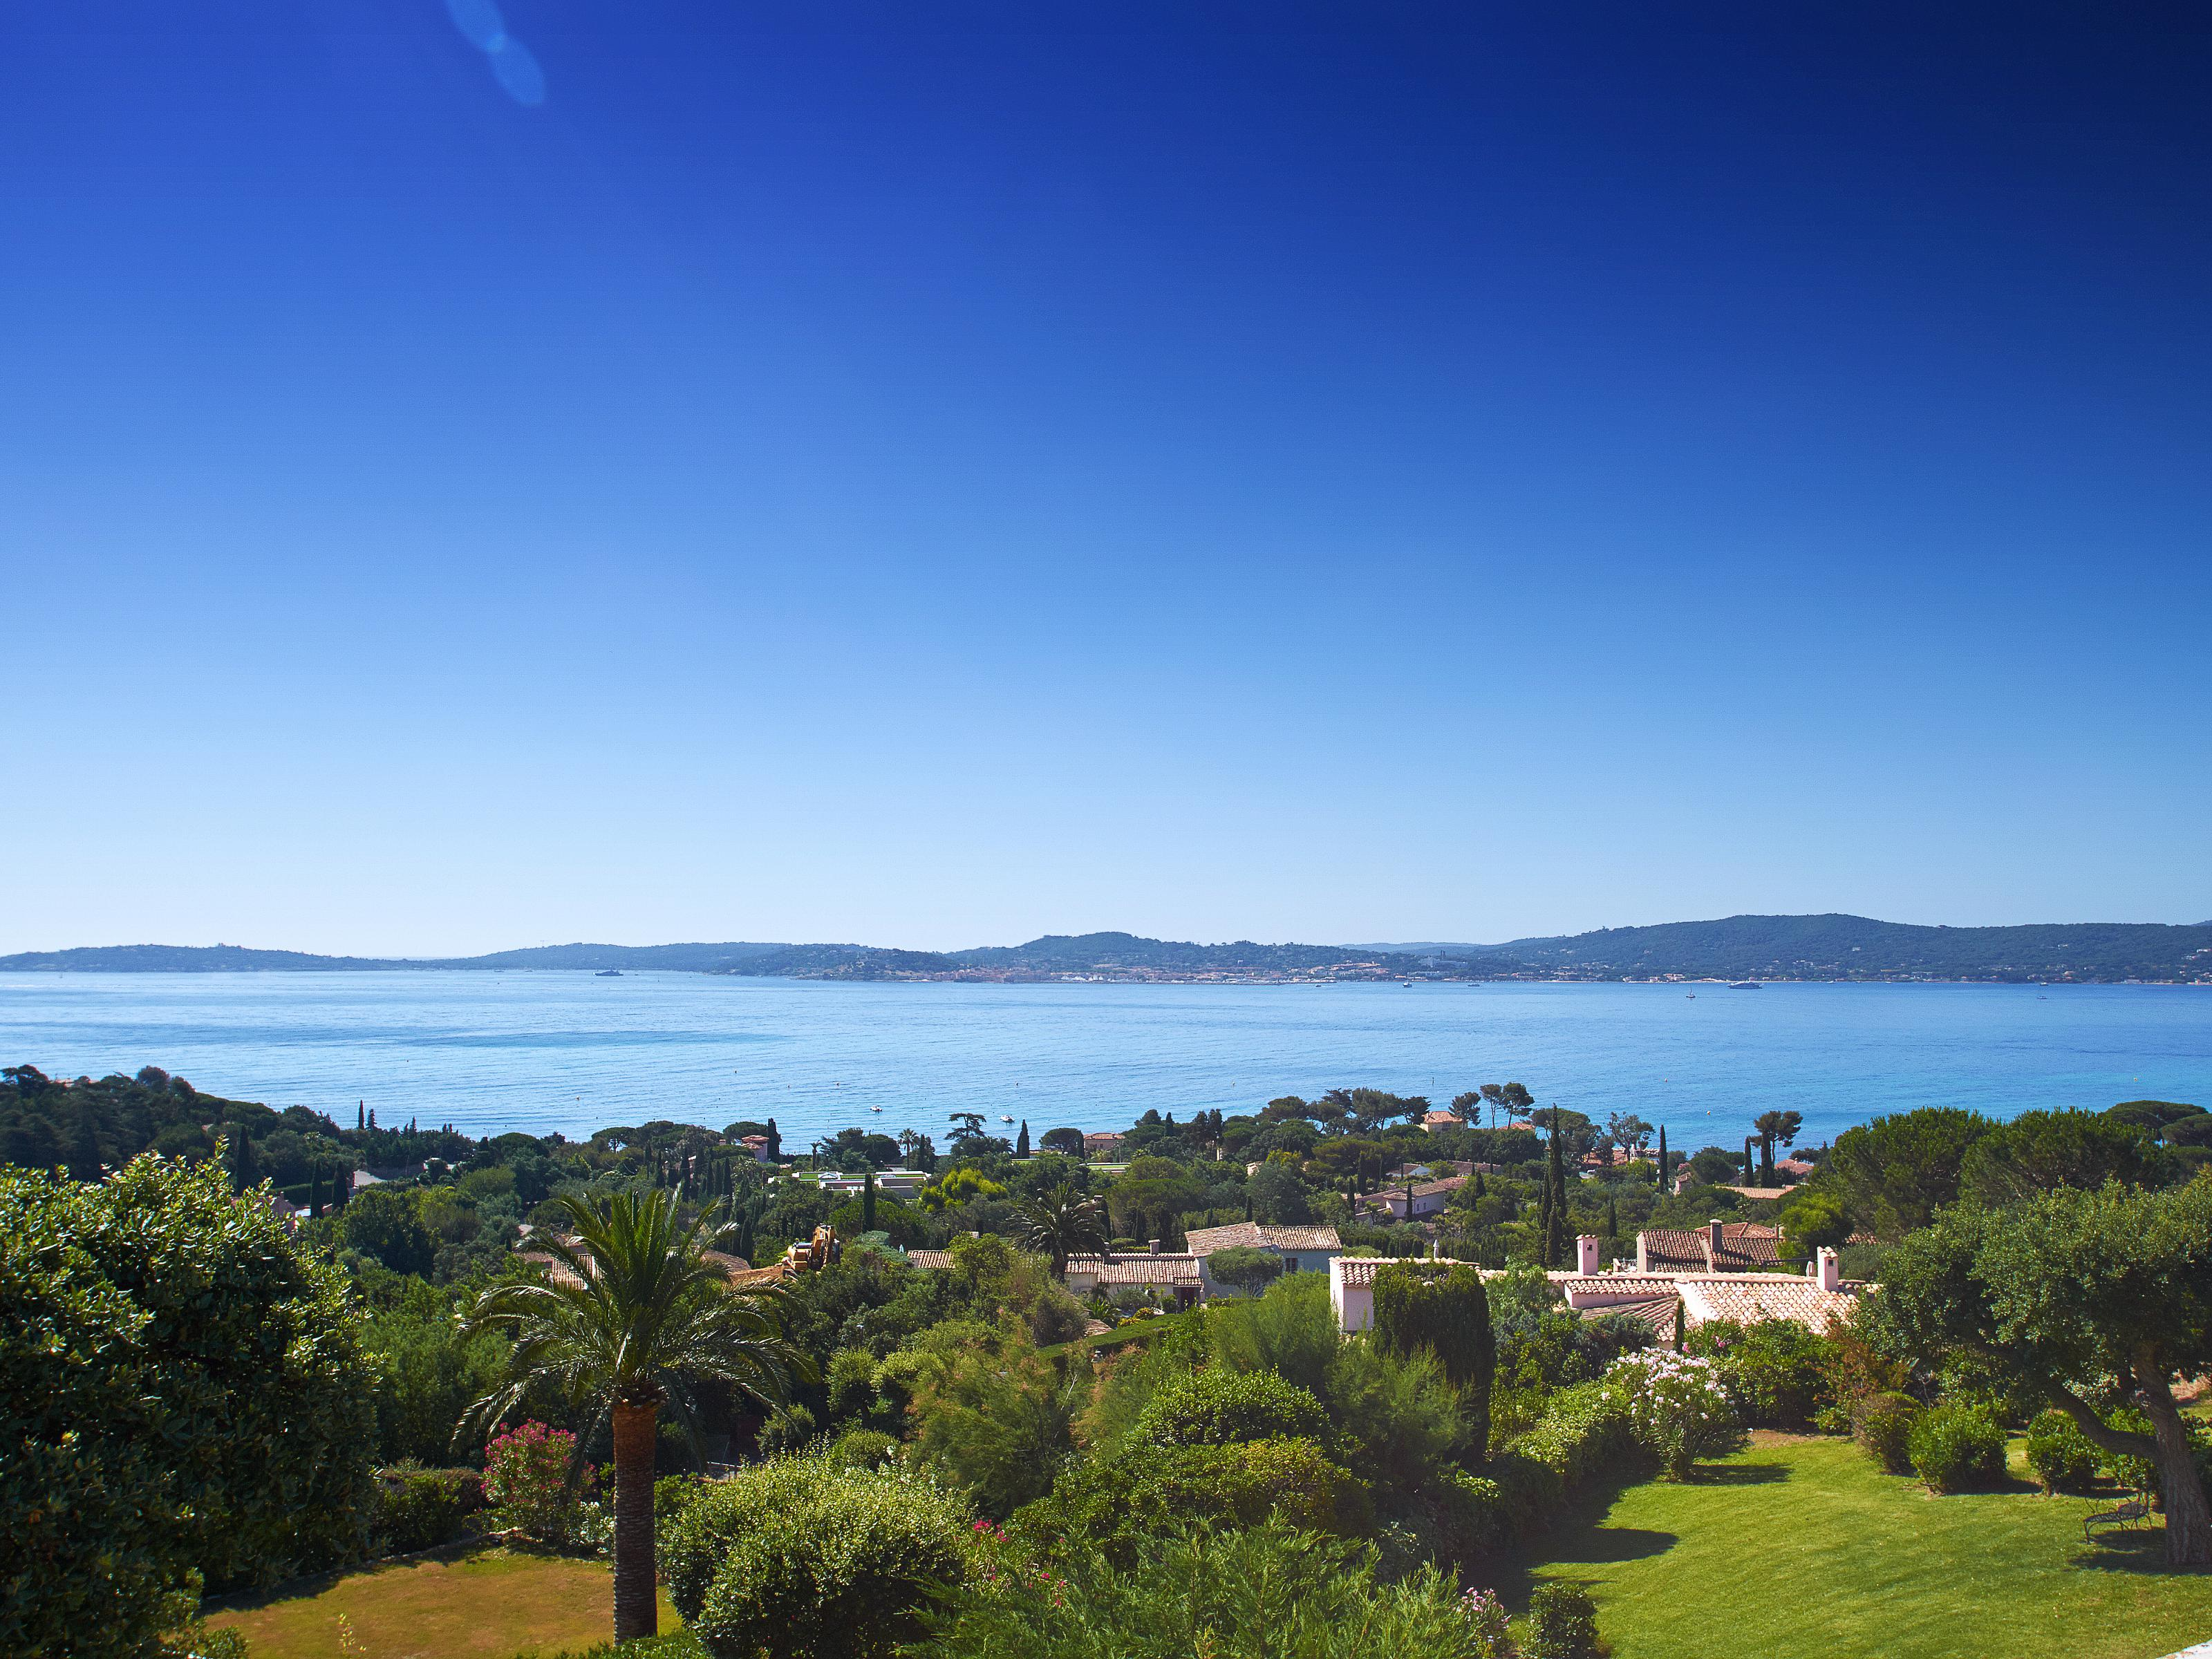 Single Family Home for Sale at Provencal villa in a private domain with sea views Saint Maxime Other Provence-Alpes-Cote D'Azur, Provence-Alpes-Cote D'Azur 83120 France